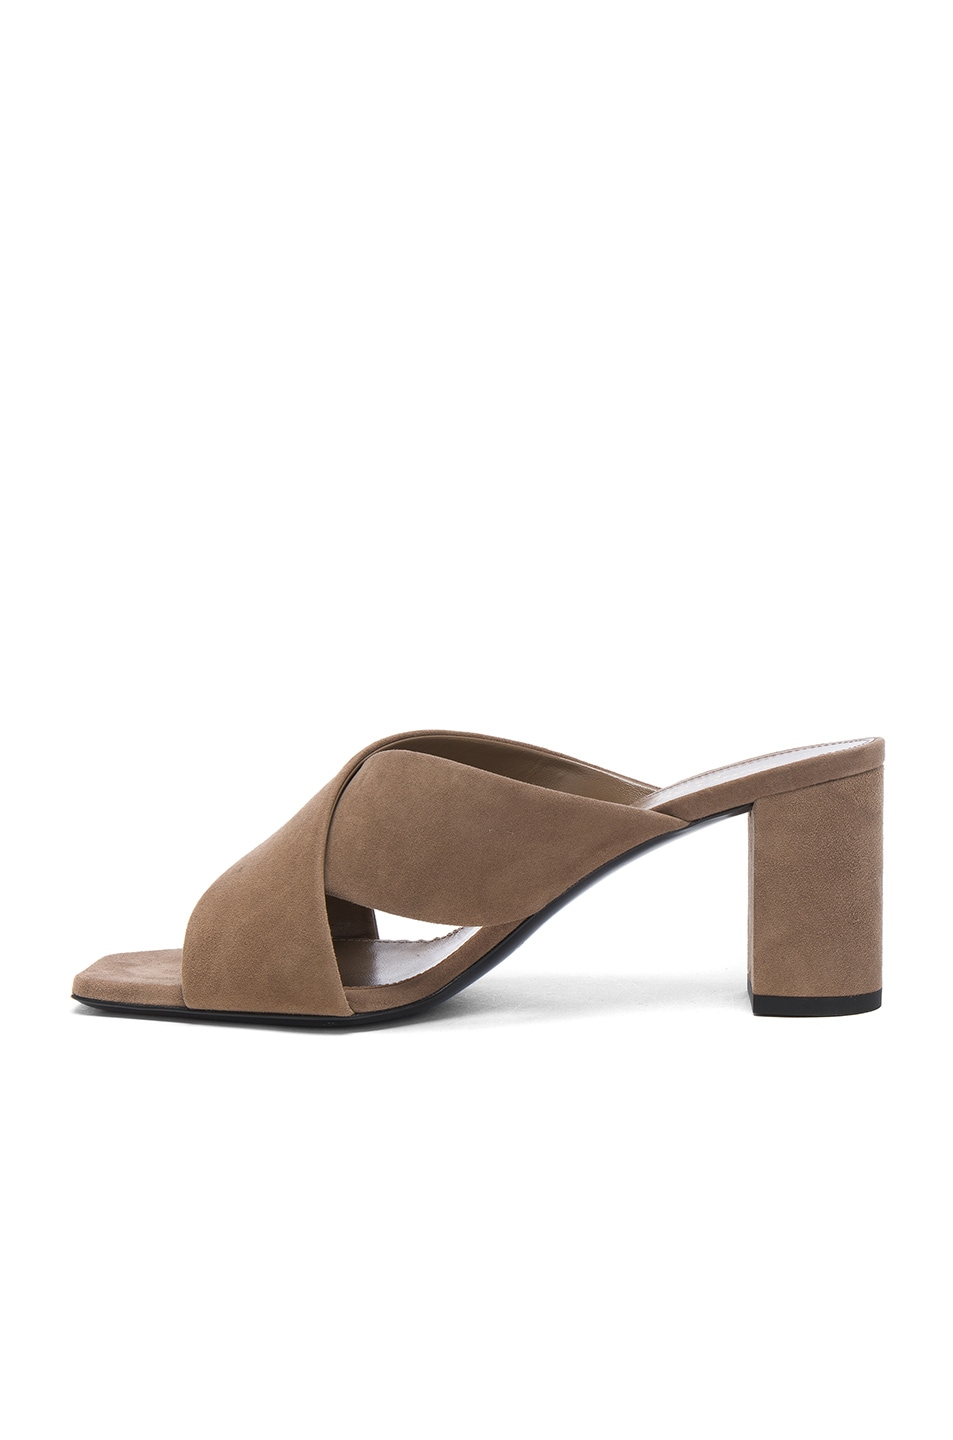 Image 5 of Saint Laurent Suede Loulou Mules in Taupe